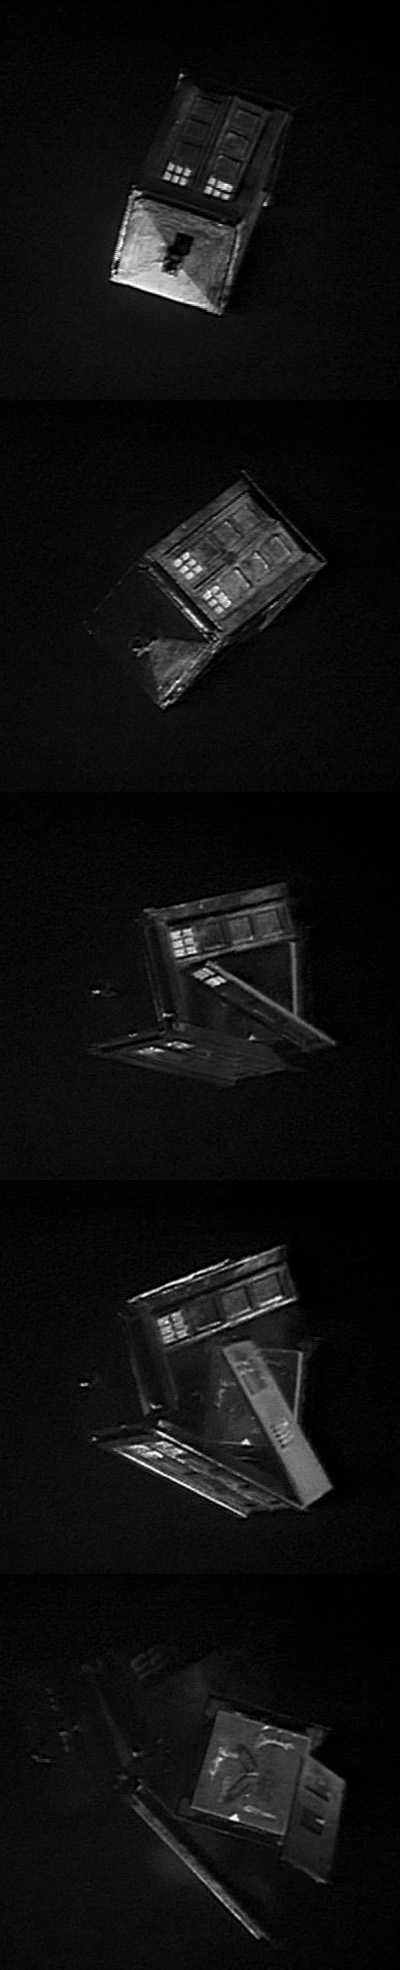 The TARDIS on screen in the 1968 serial The Mind Robber